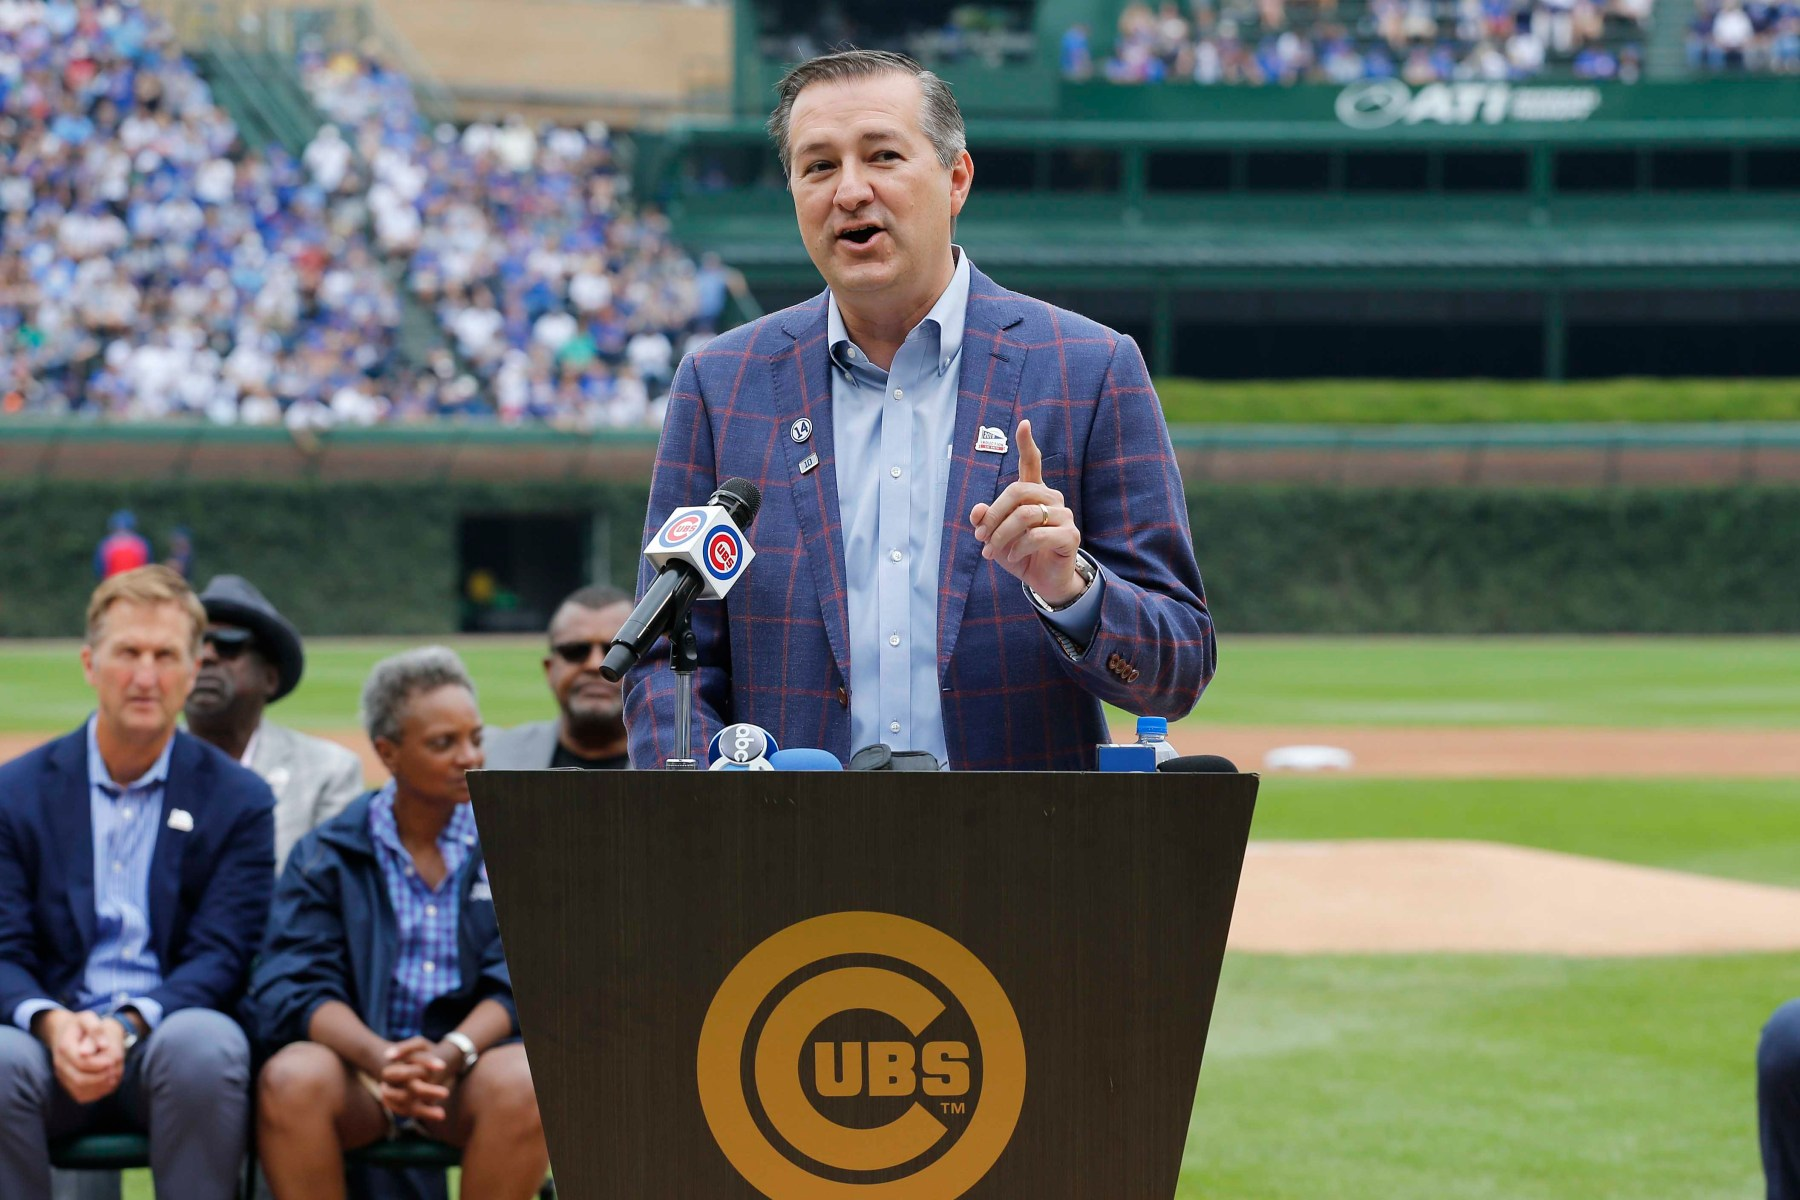 cubs owner tom ricketts